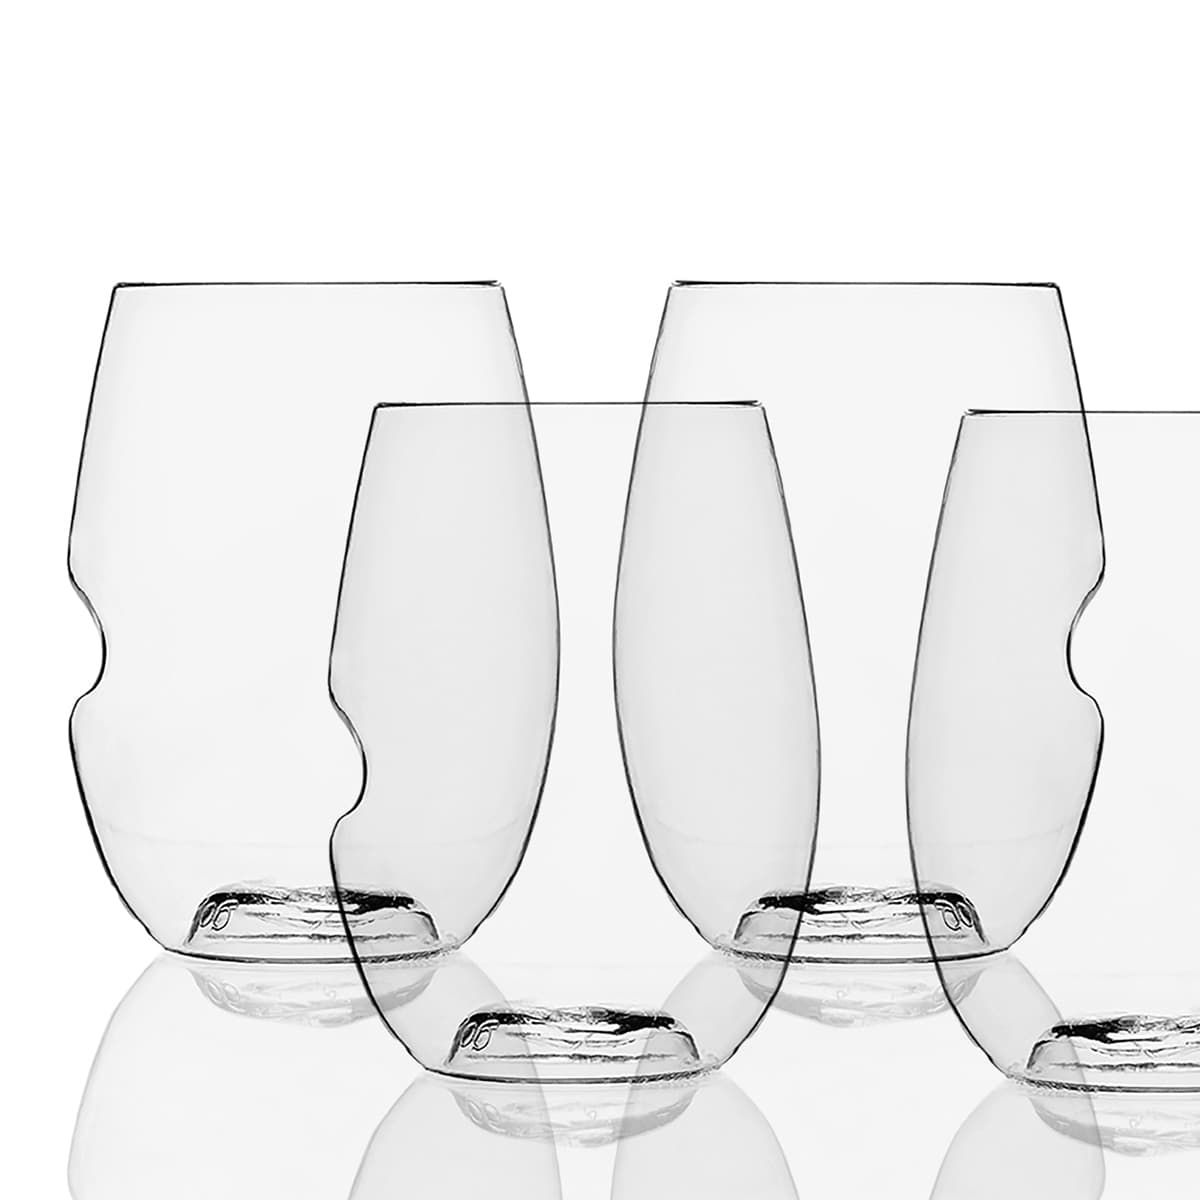 10 Wine Glasses That Can Go in the Dishwasher: gallery image 11